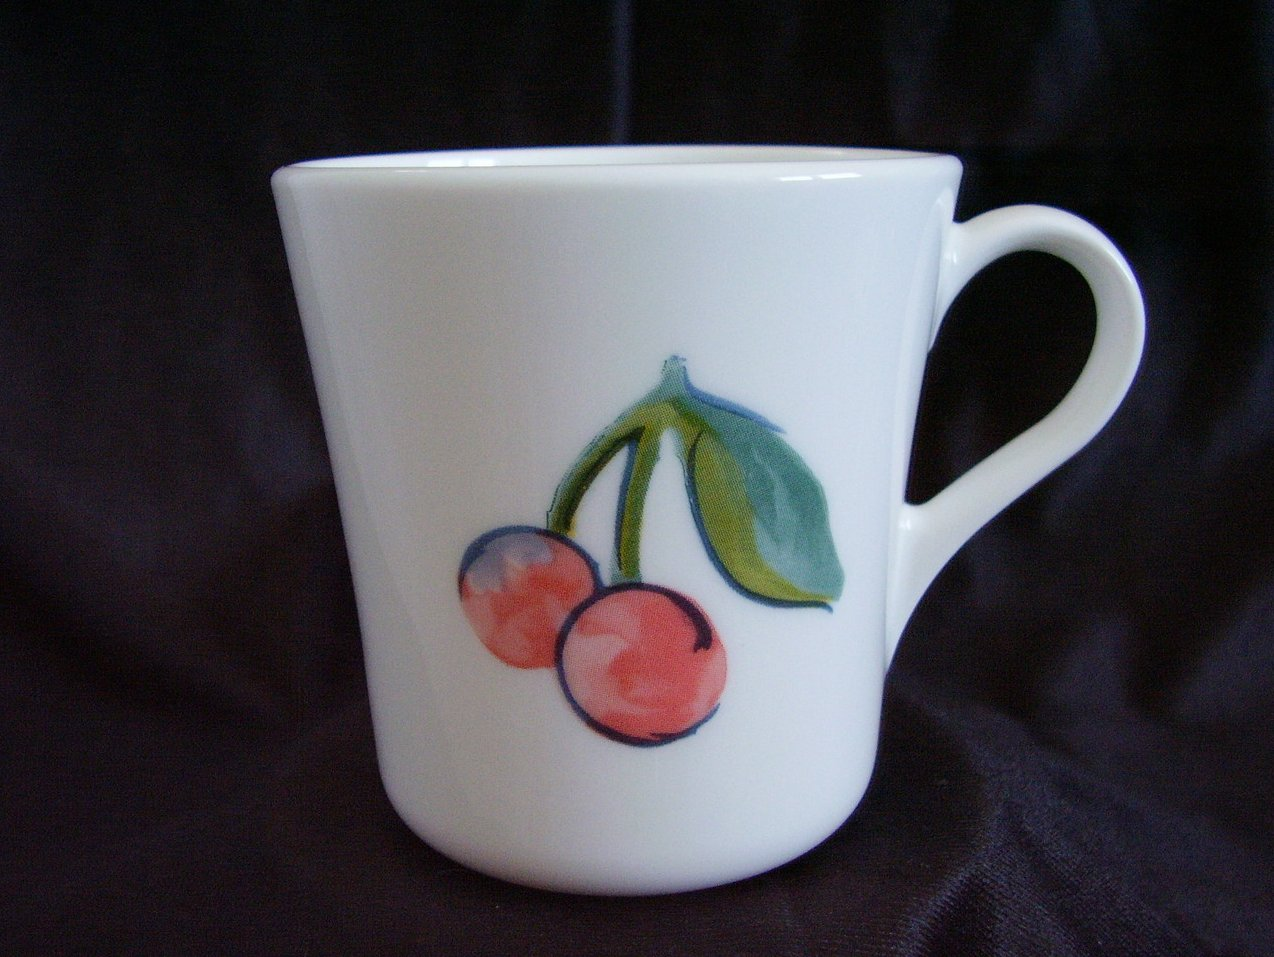 Corelle Fruit Too Coffee Cup Mug Cherries Apples